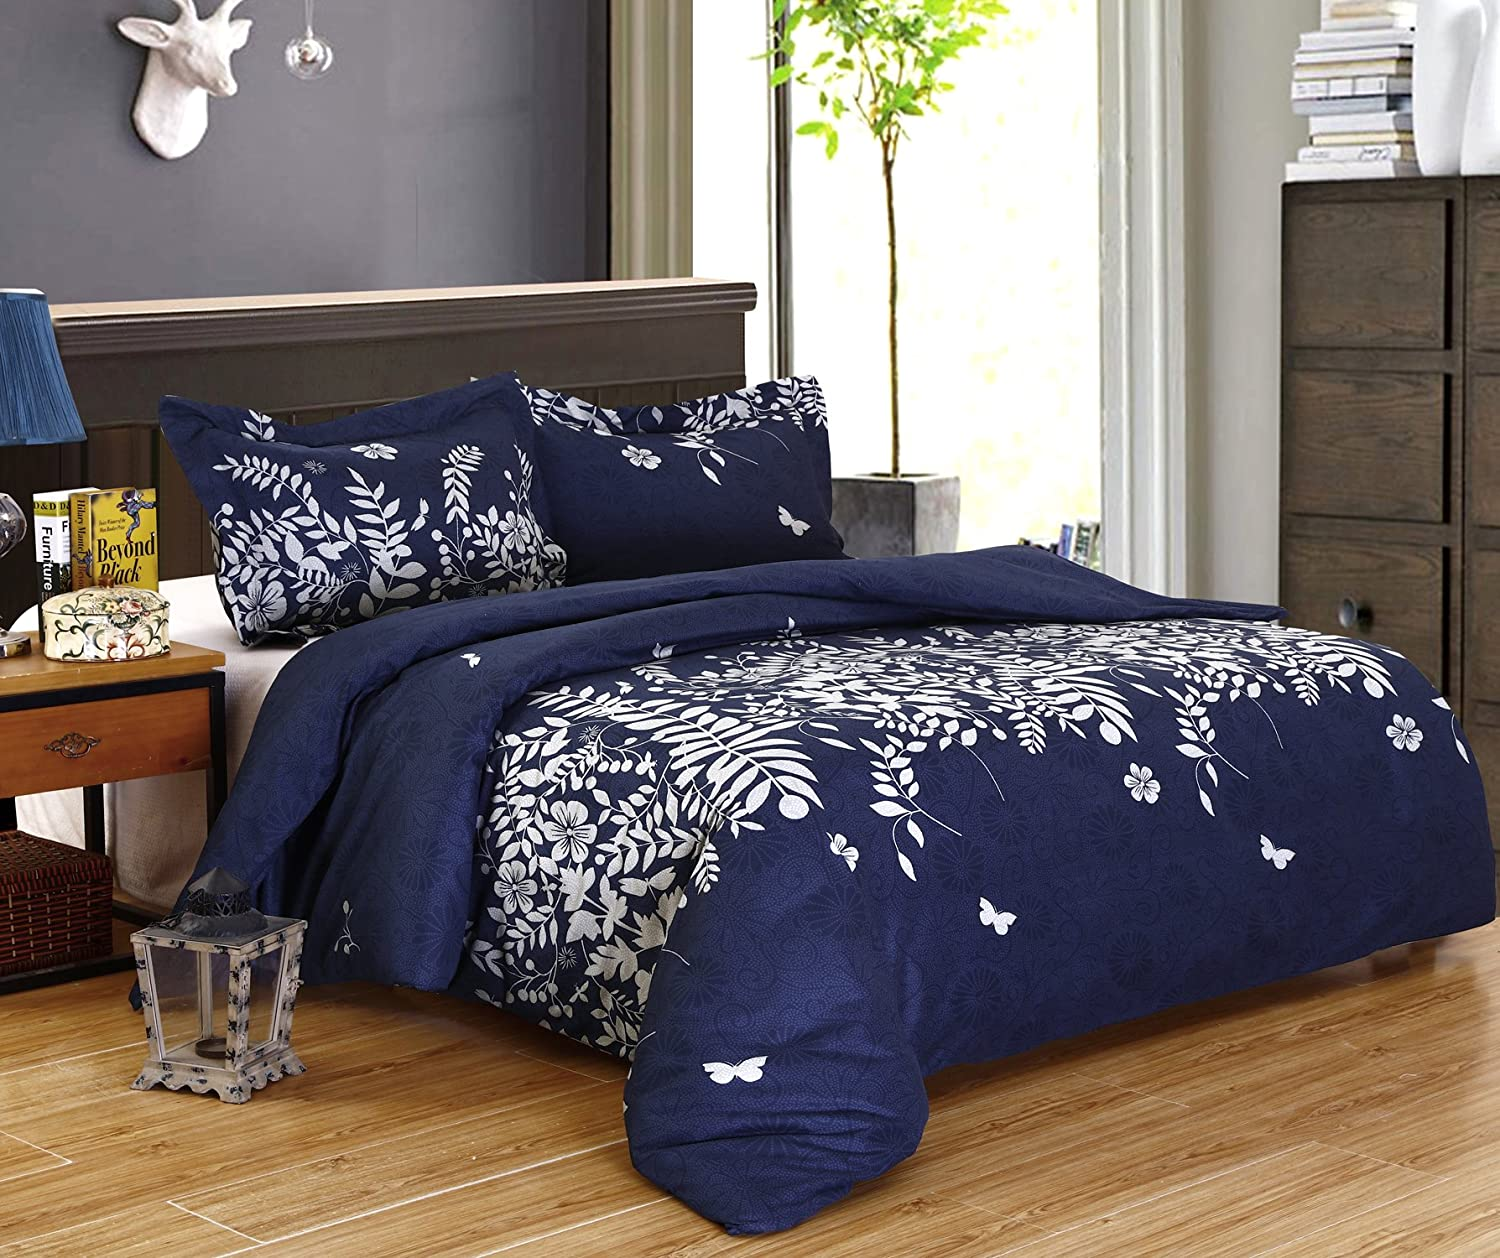 DelbouTree 3pcs Bedding Set,Lightweight Microfiber Duvet Cover Set,Full Queen size Navy Jungle